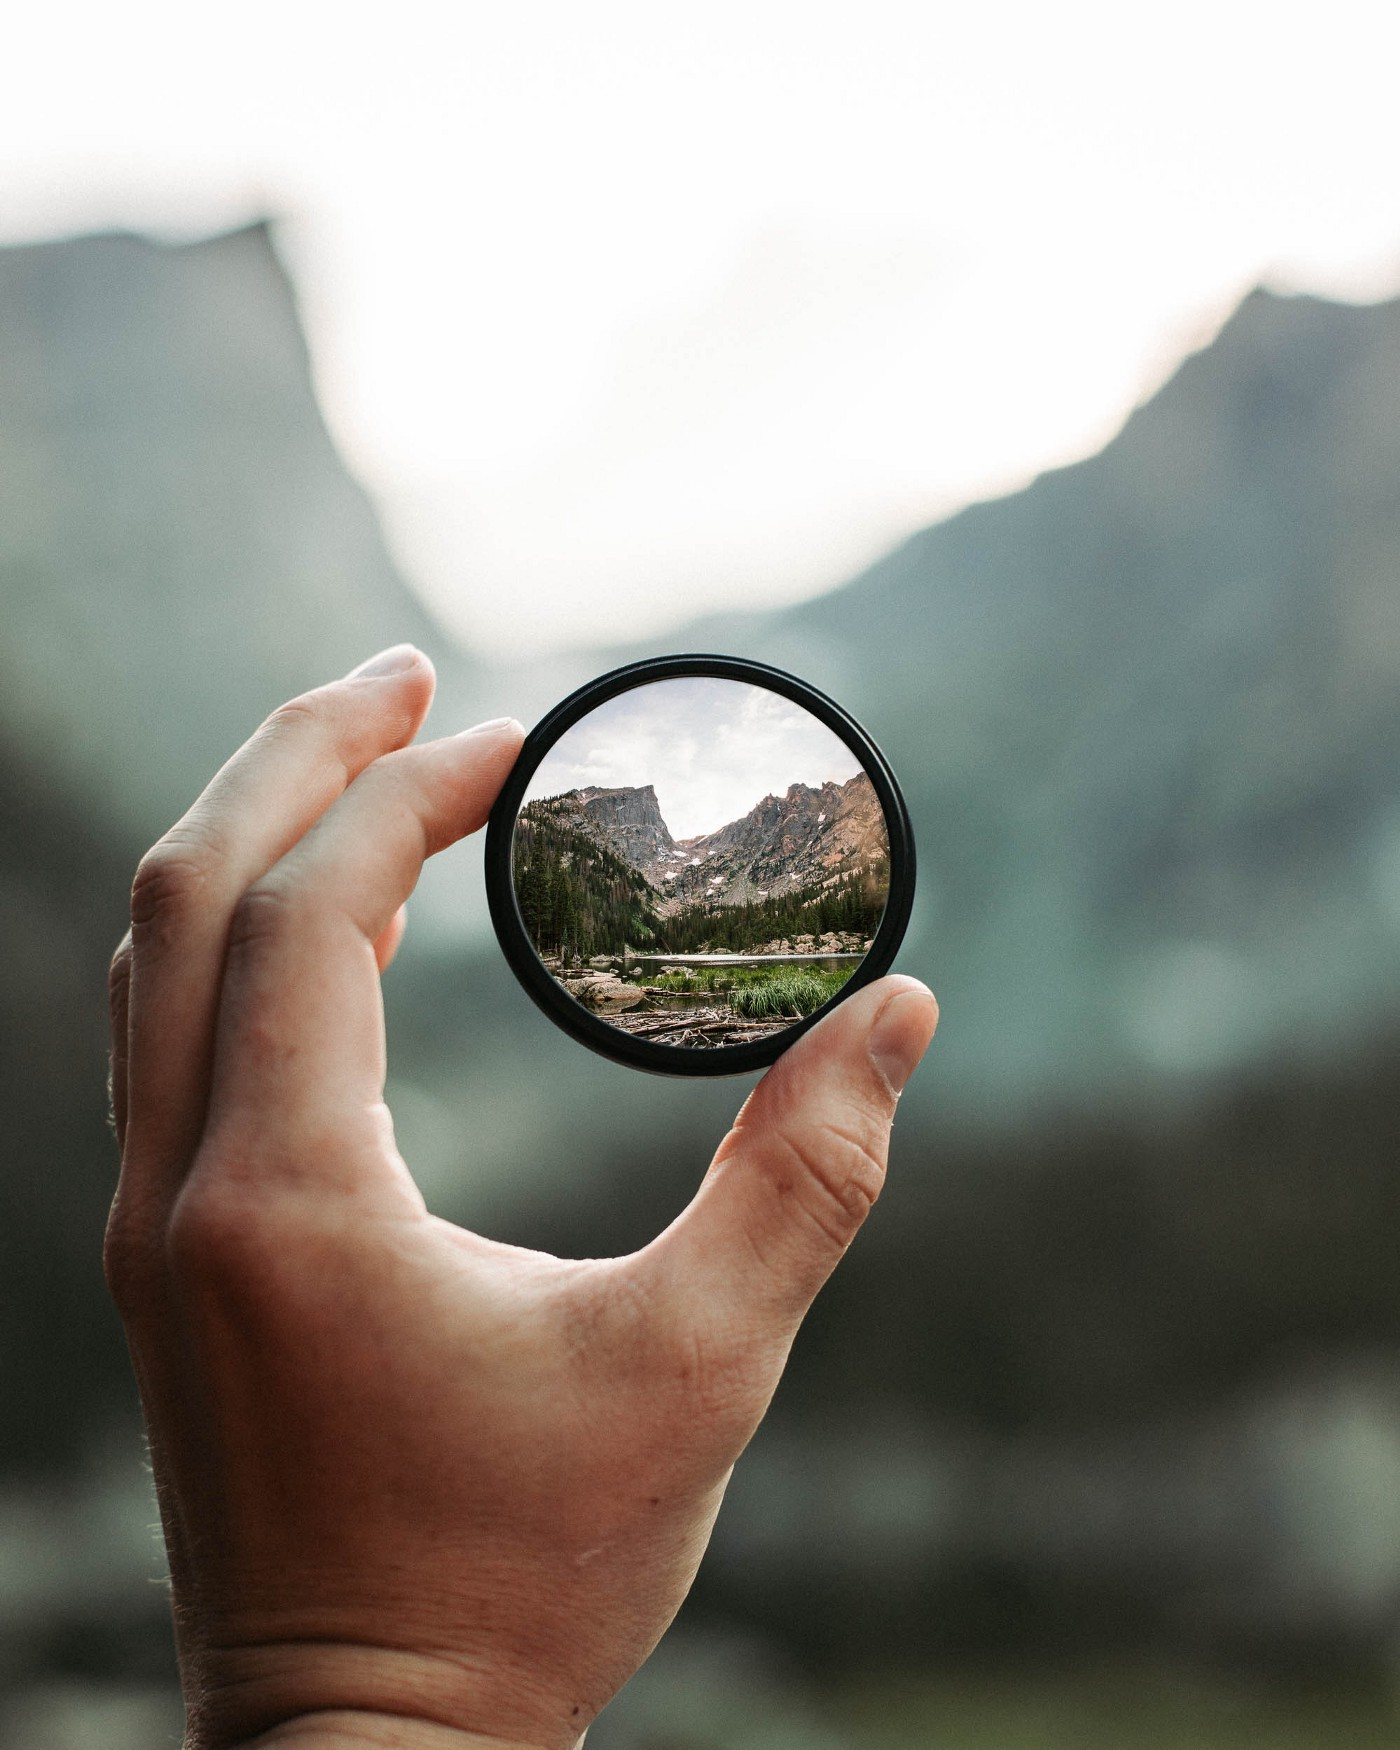 A man holds up a camera lens through which a beautiful landscape can be seen.